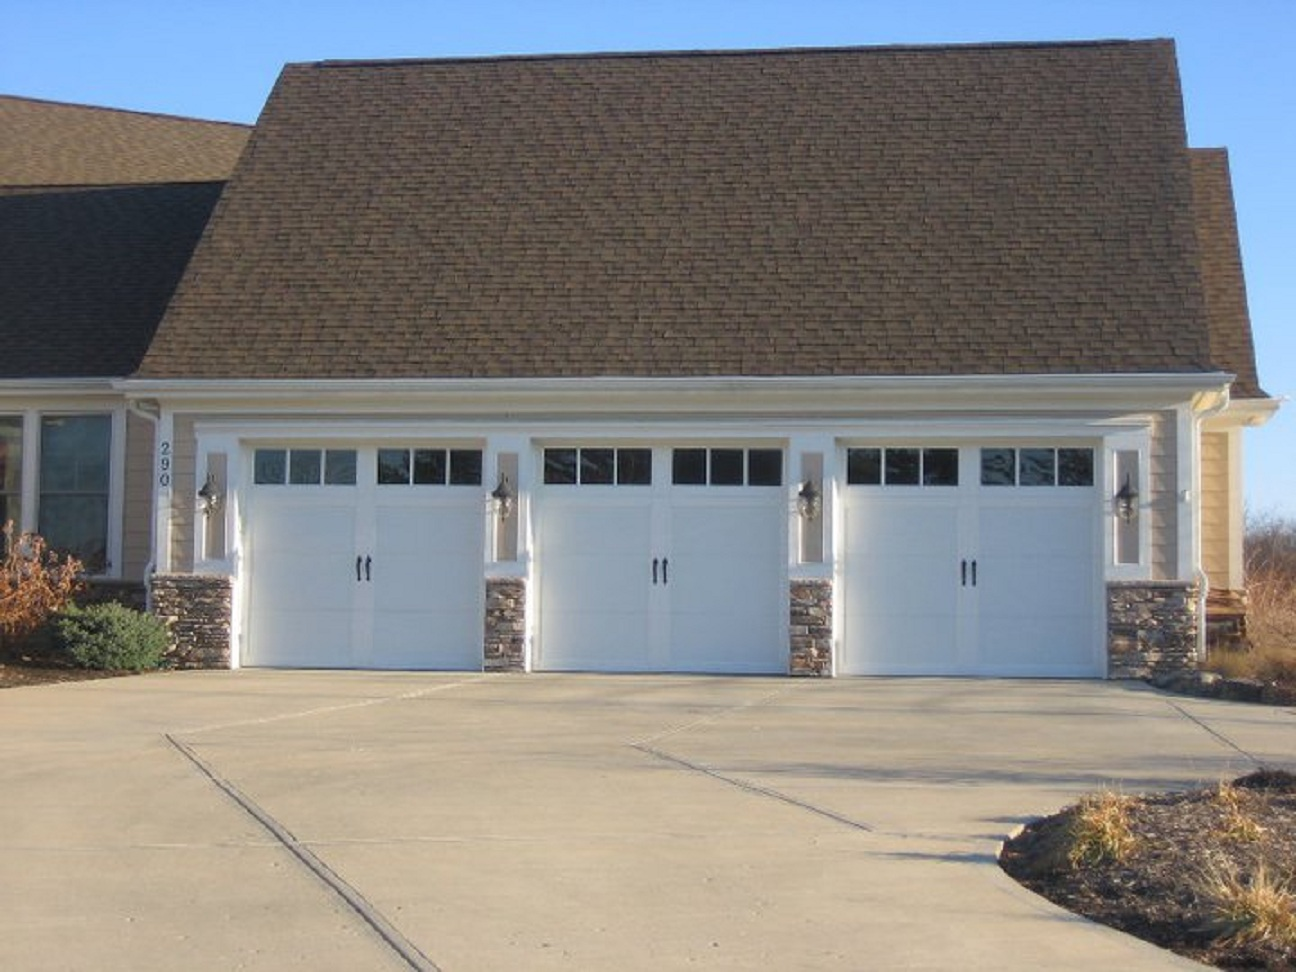 Le Meilleur Garage Door Installation Fort Worth Overhead Garage Door Ce Mois Ci